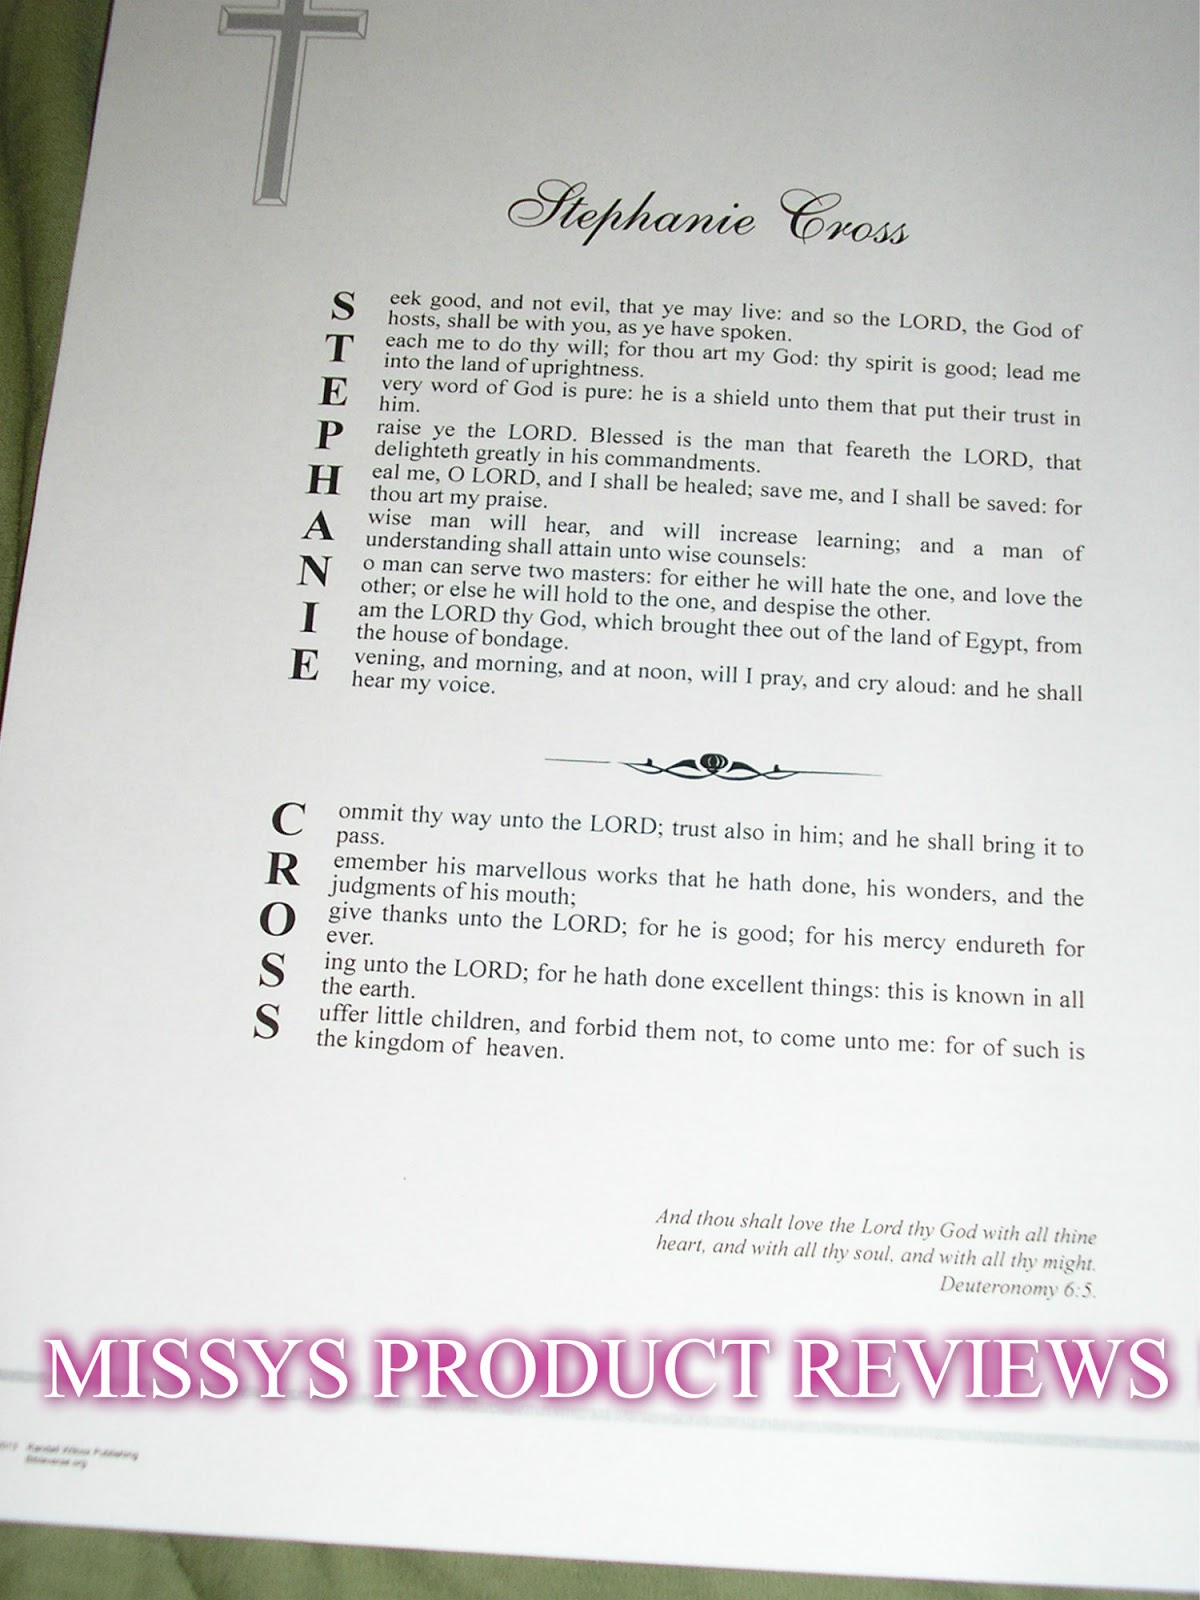 missys product reviews bible verse gifts review and giveaway